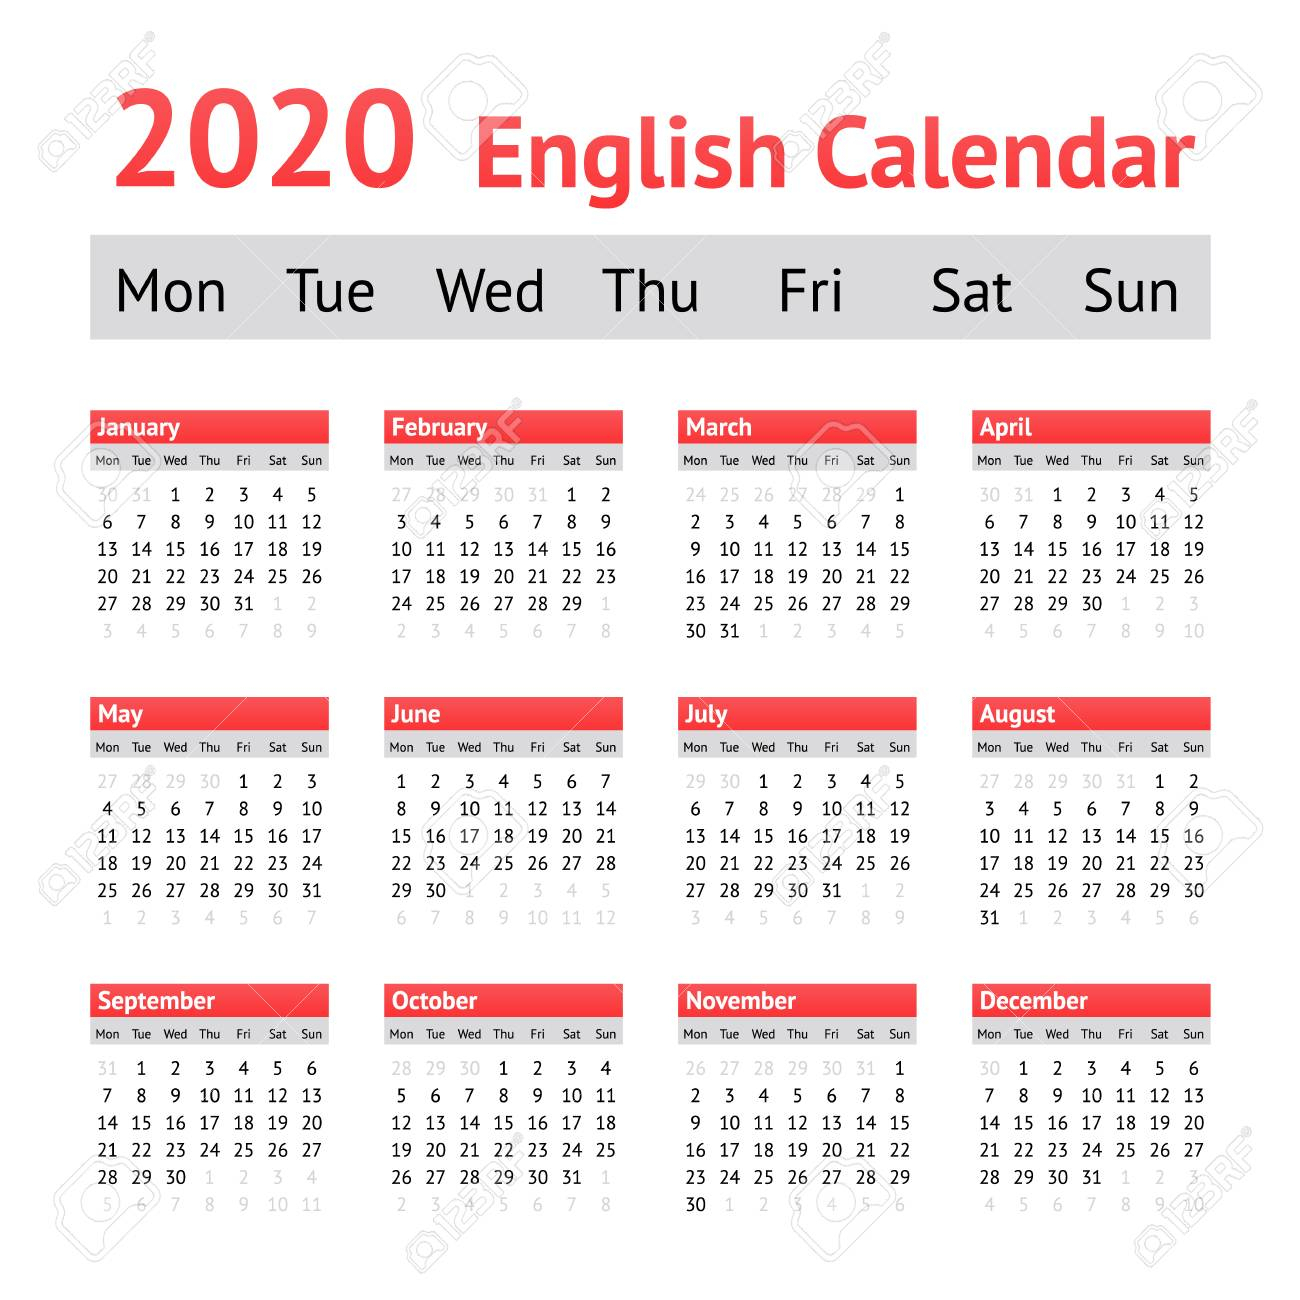 2020 European English Calendar. Week Starts On Monday